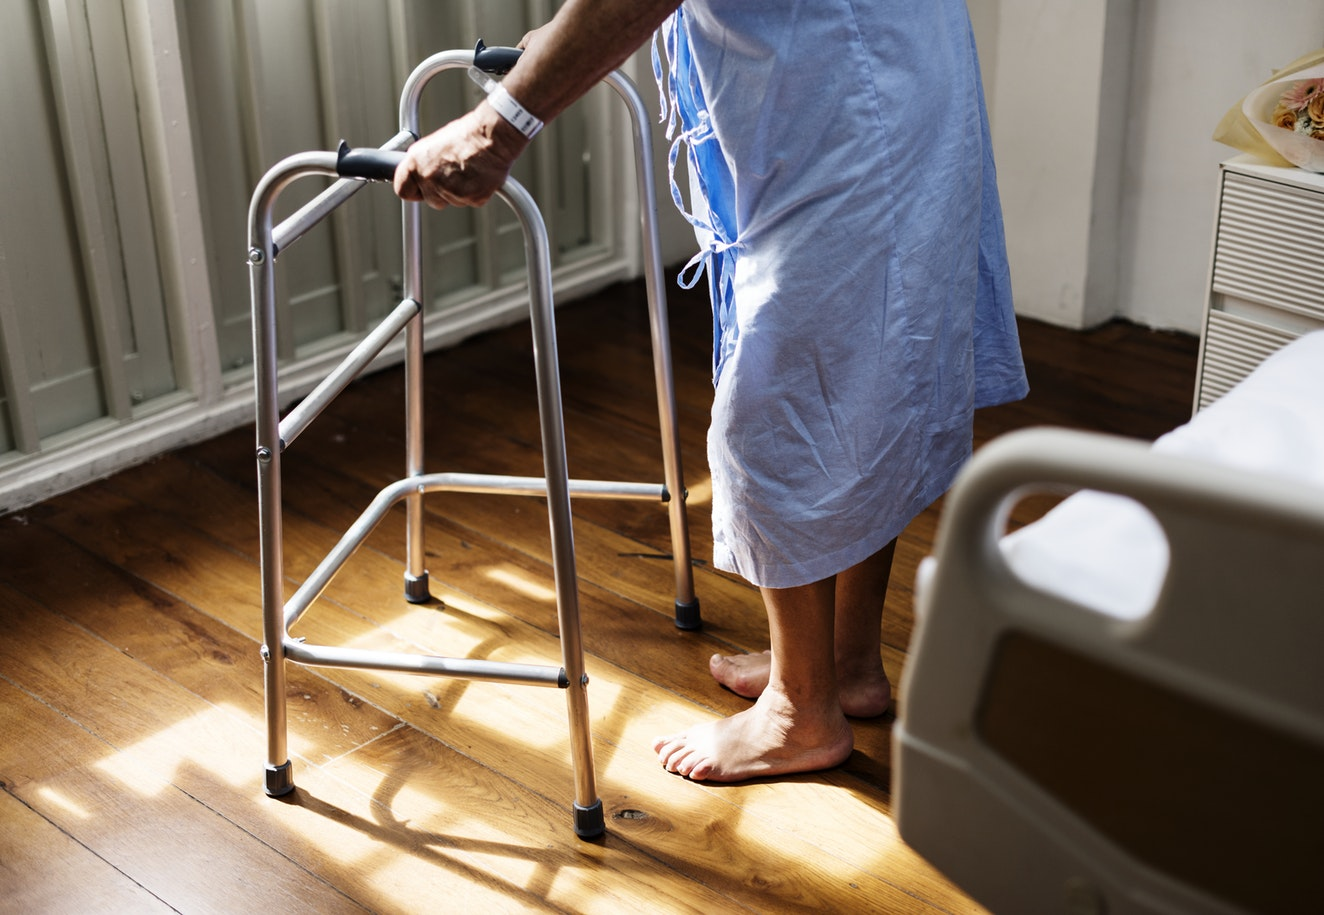 An individual using a walker to get out of their hospital bed